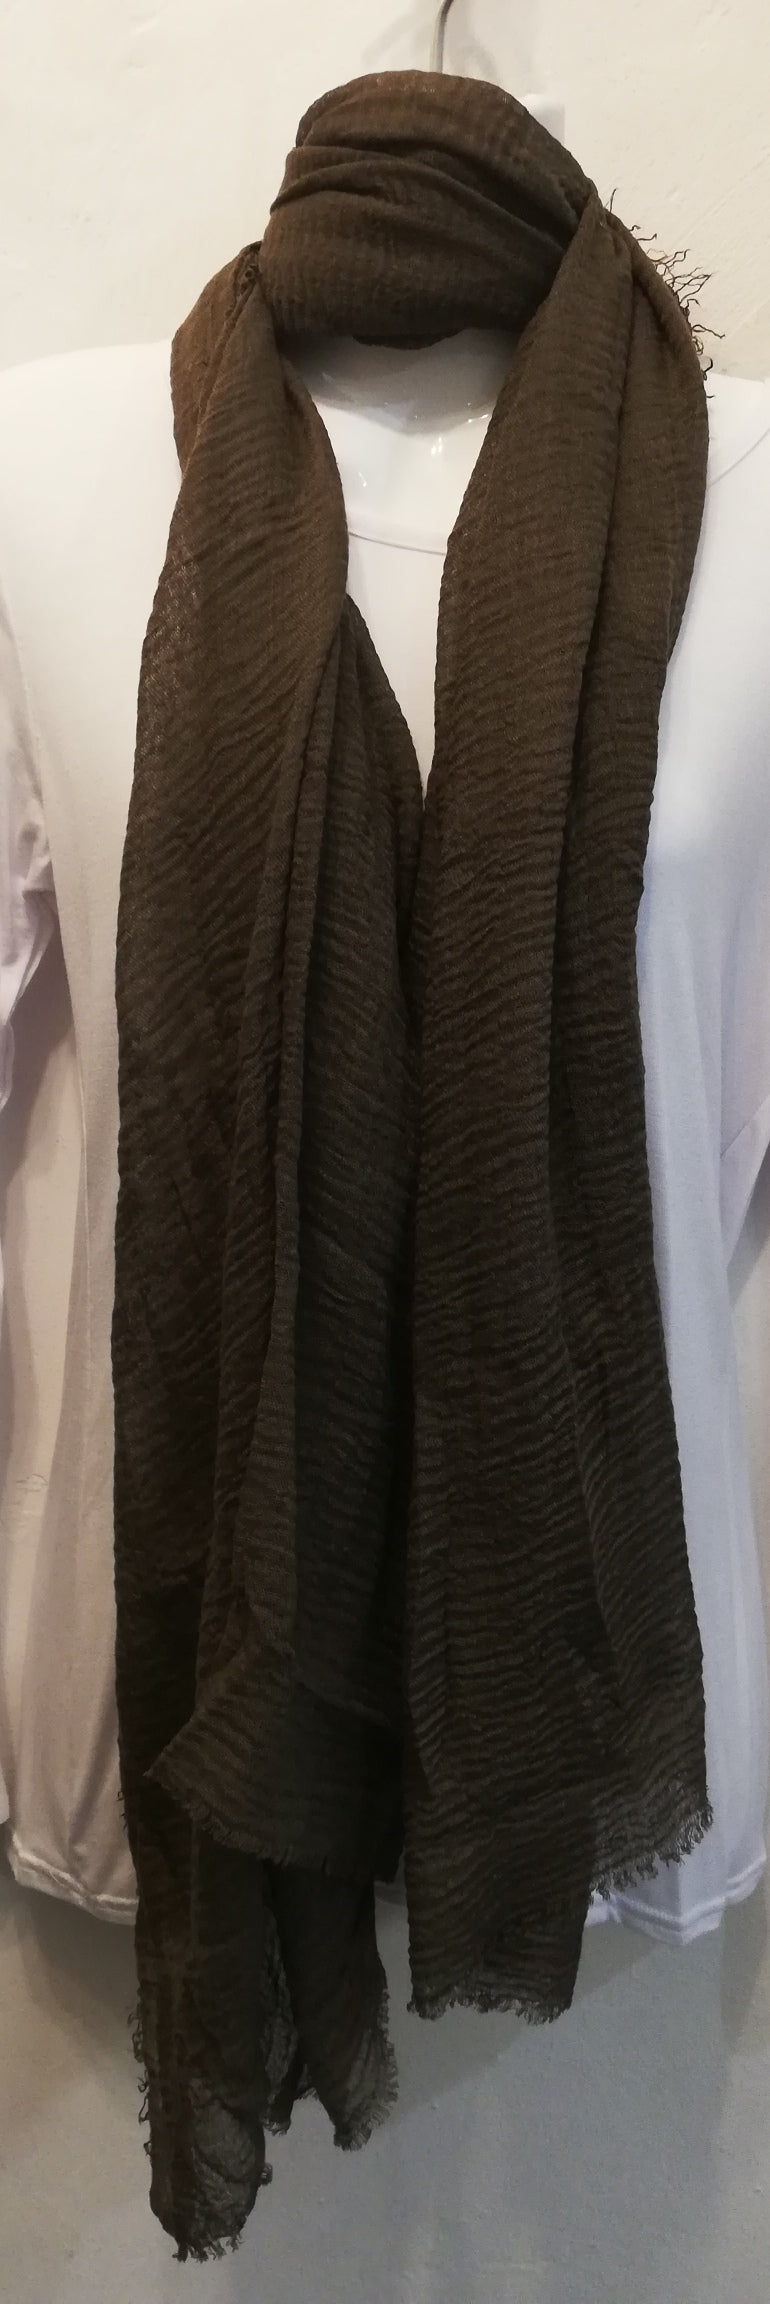 Plain Brown Scarf